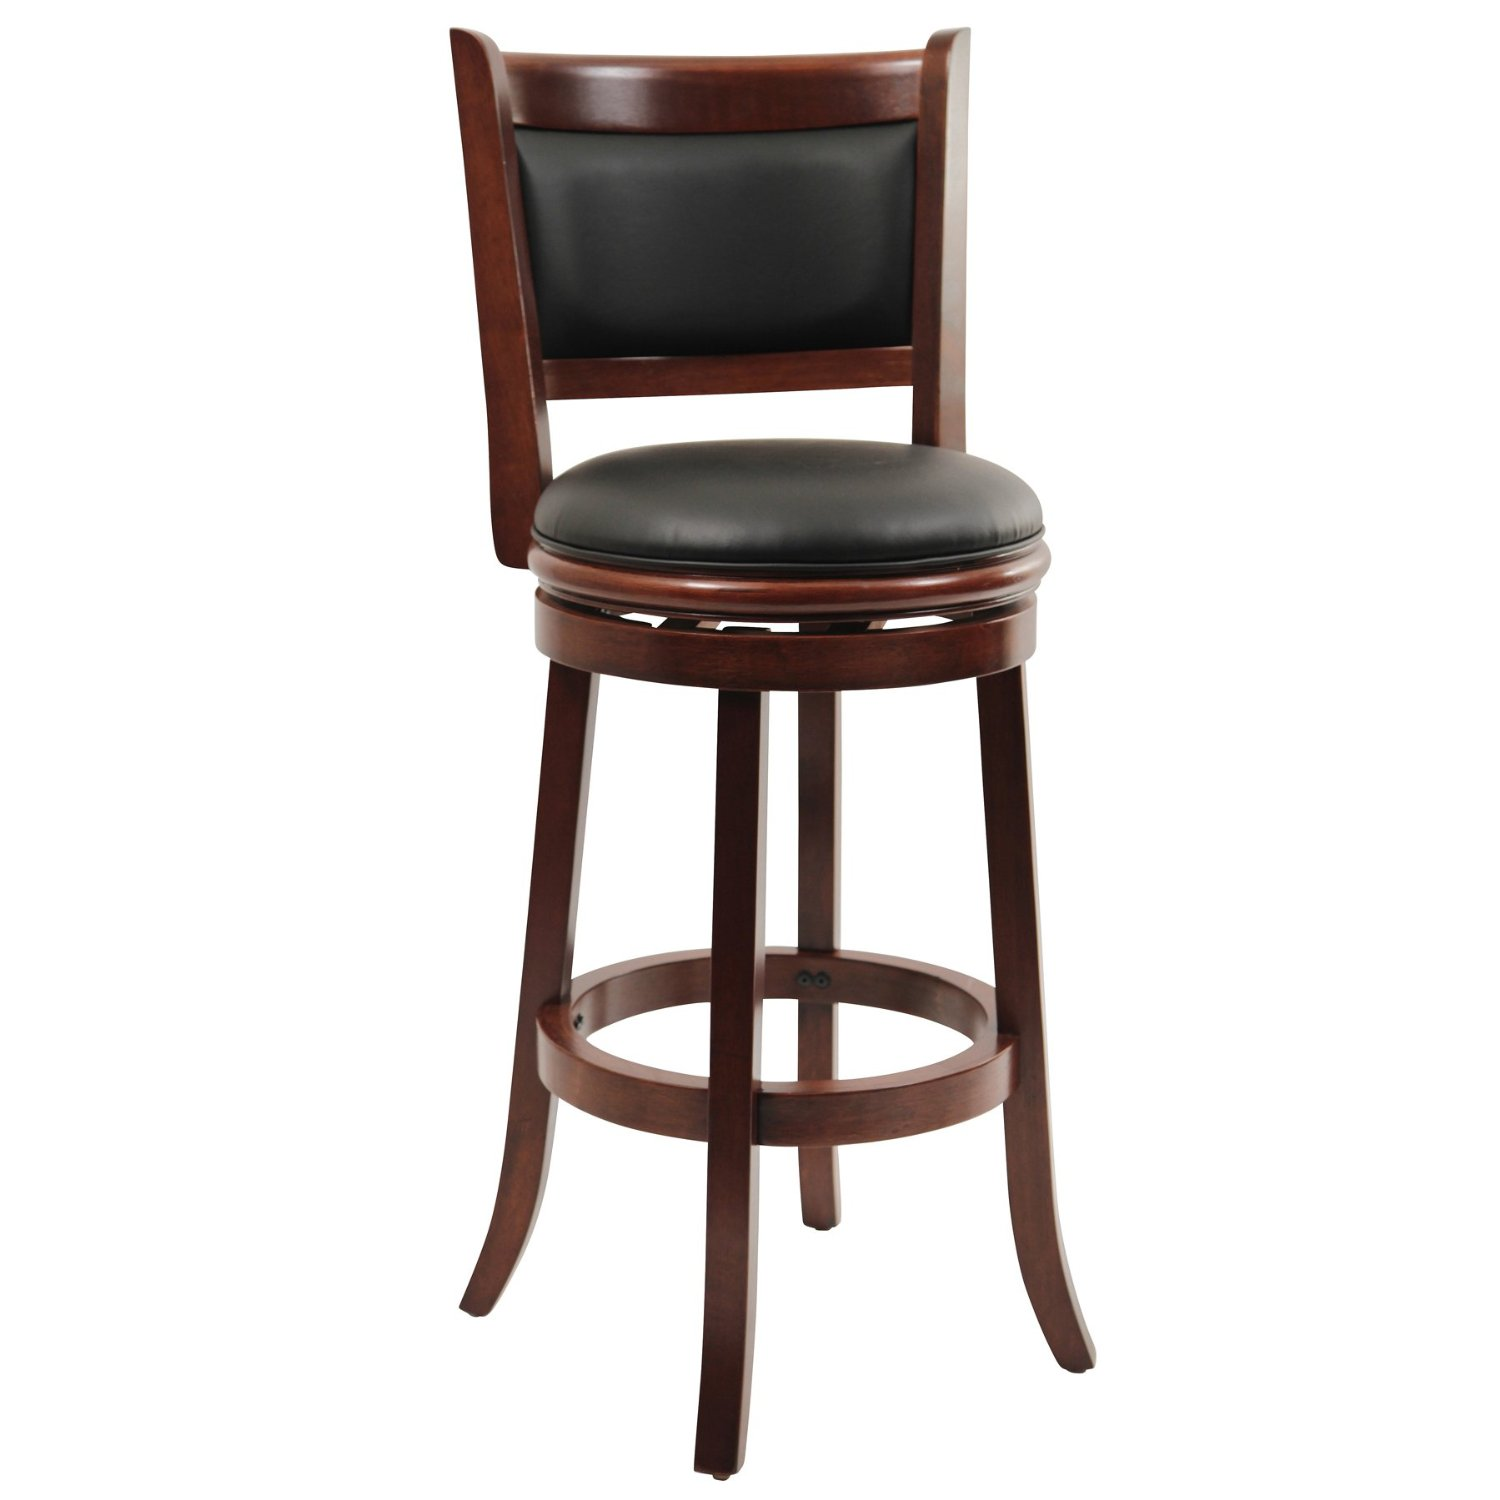 Swivel Stool (View 10 of 10)